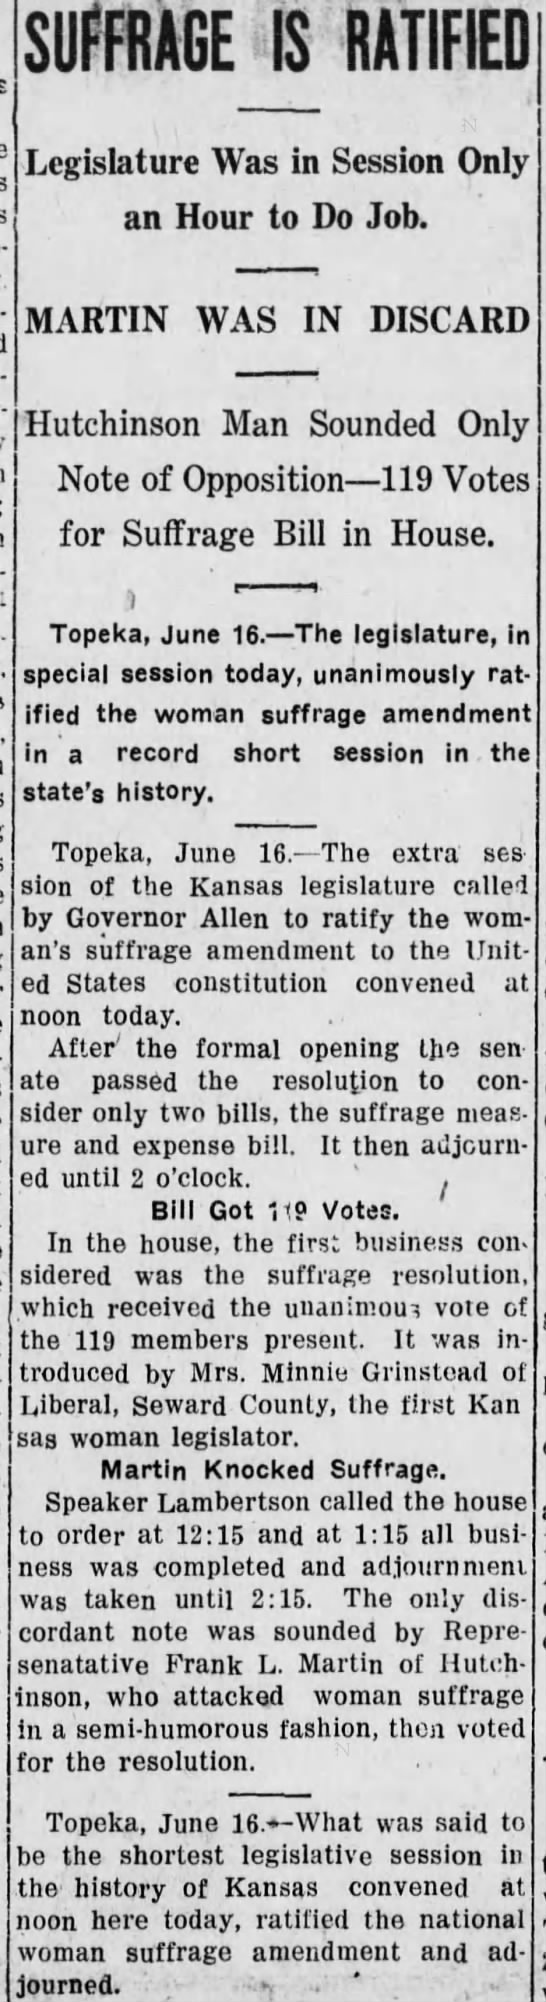 Suffrage is Ratified. The Independence Daily Reporter (Independence, Kansas) 16 June 1919, p 1 -